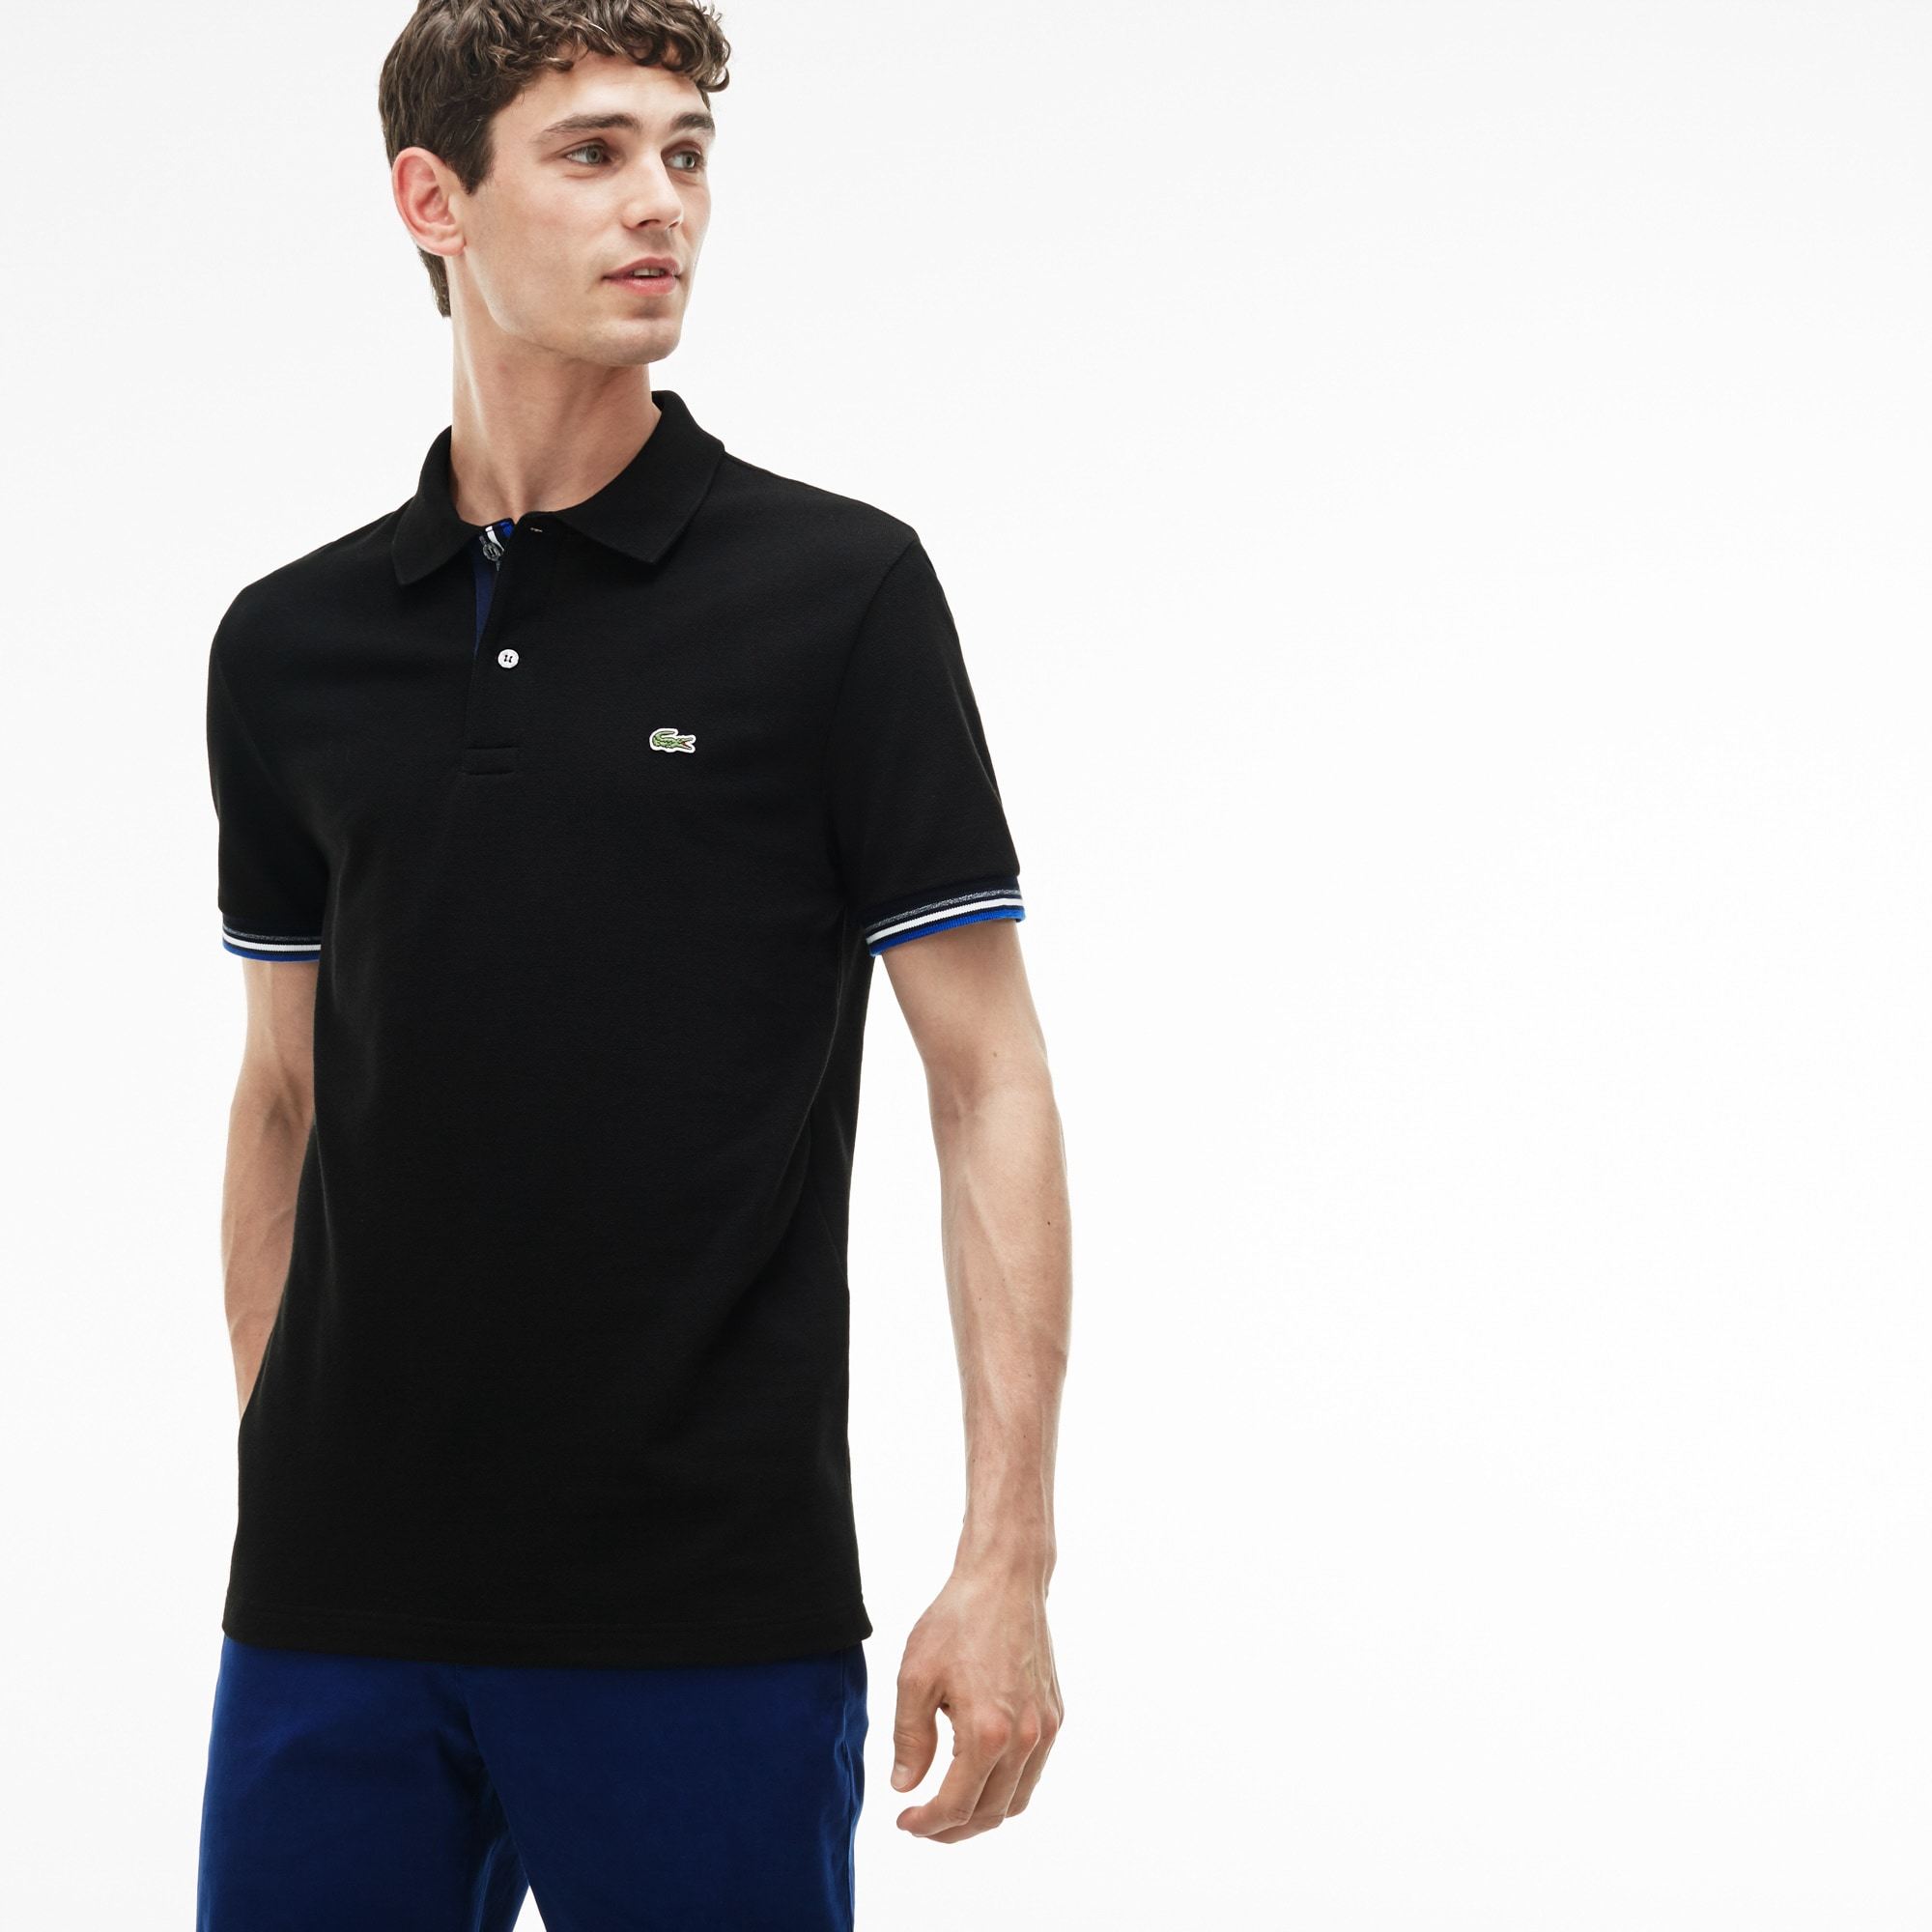 Men's Slim Fit Piped Two-Ply Cotton Petit Piqué Polo